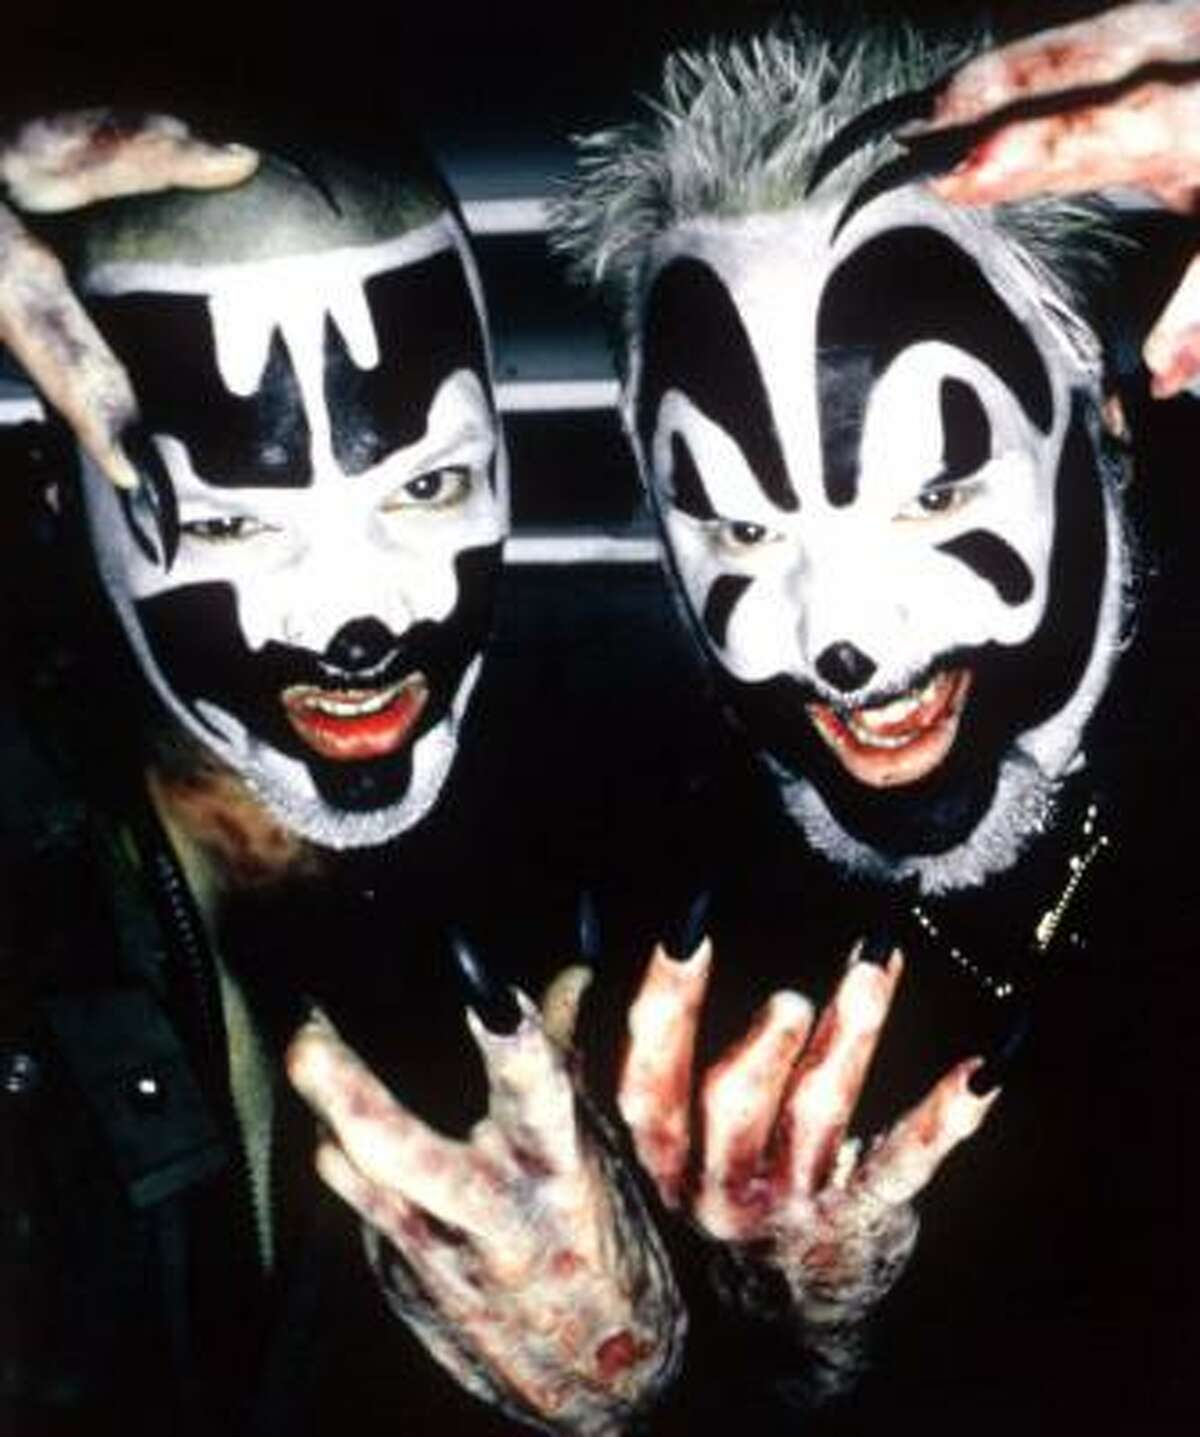 Makeup is the first step to becoming a true Insane Clown Posse juggalo.